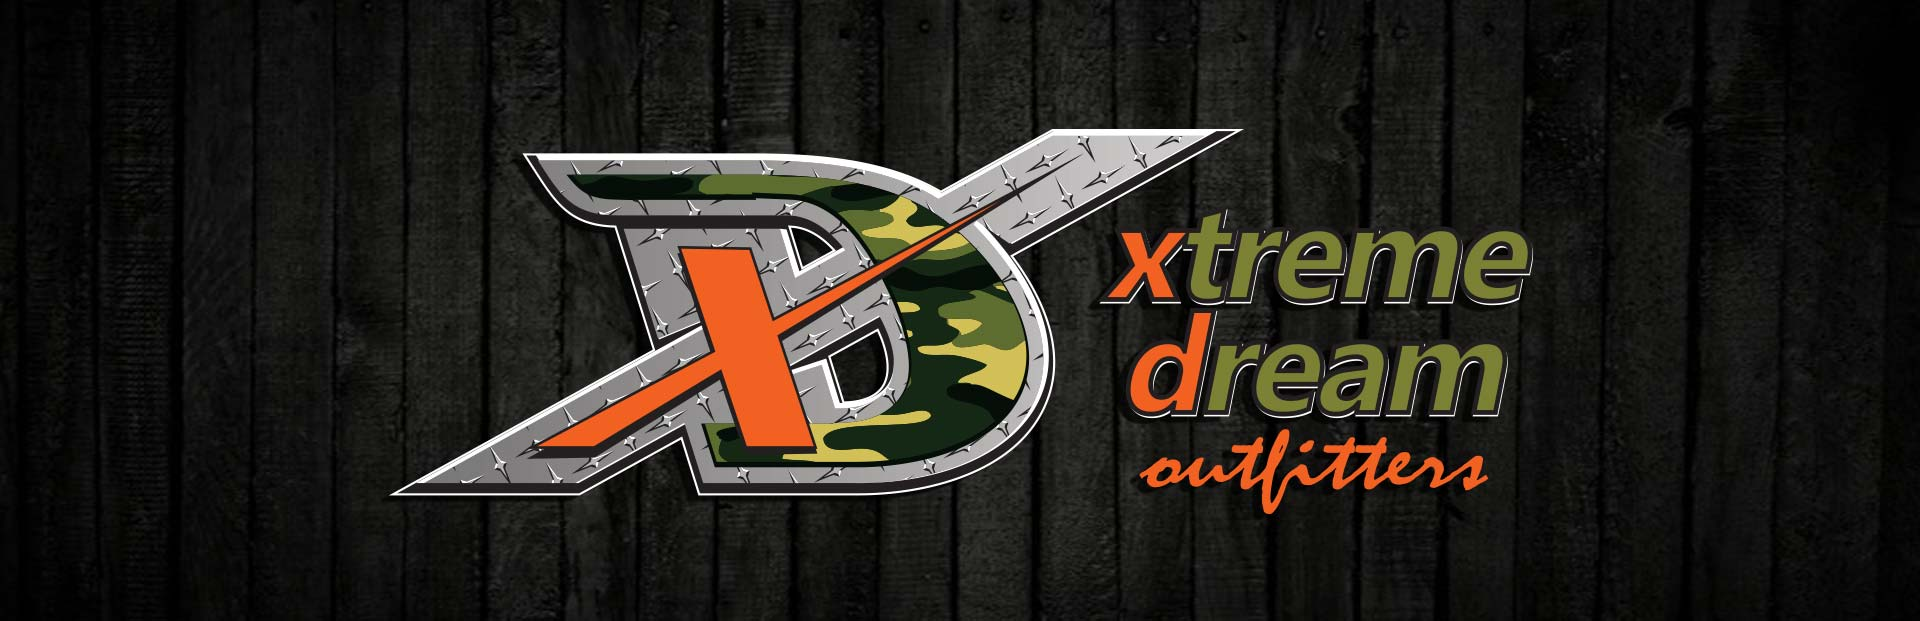 Xtreme Dream Outfitters Downloads